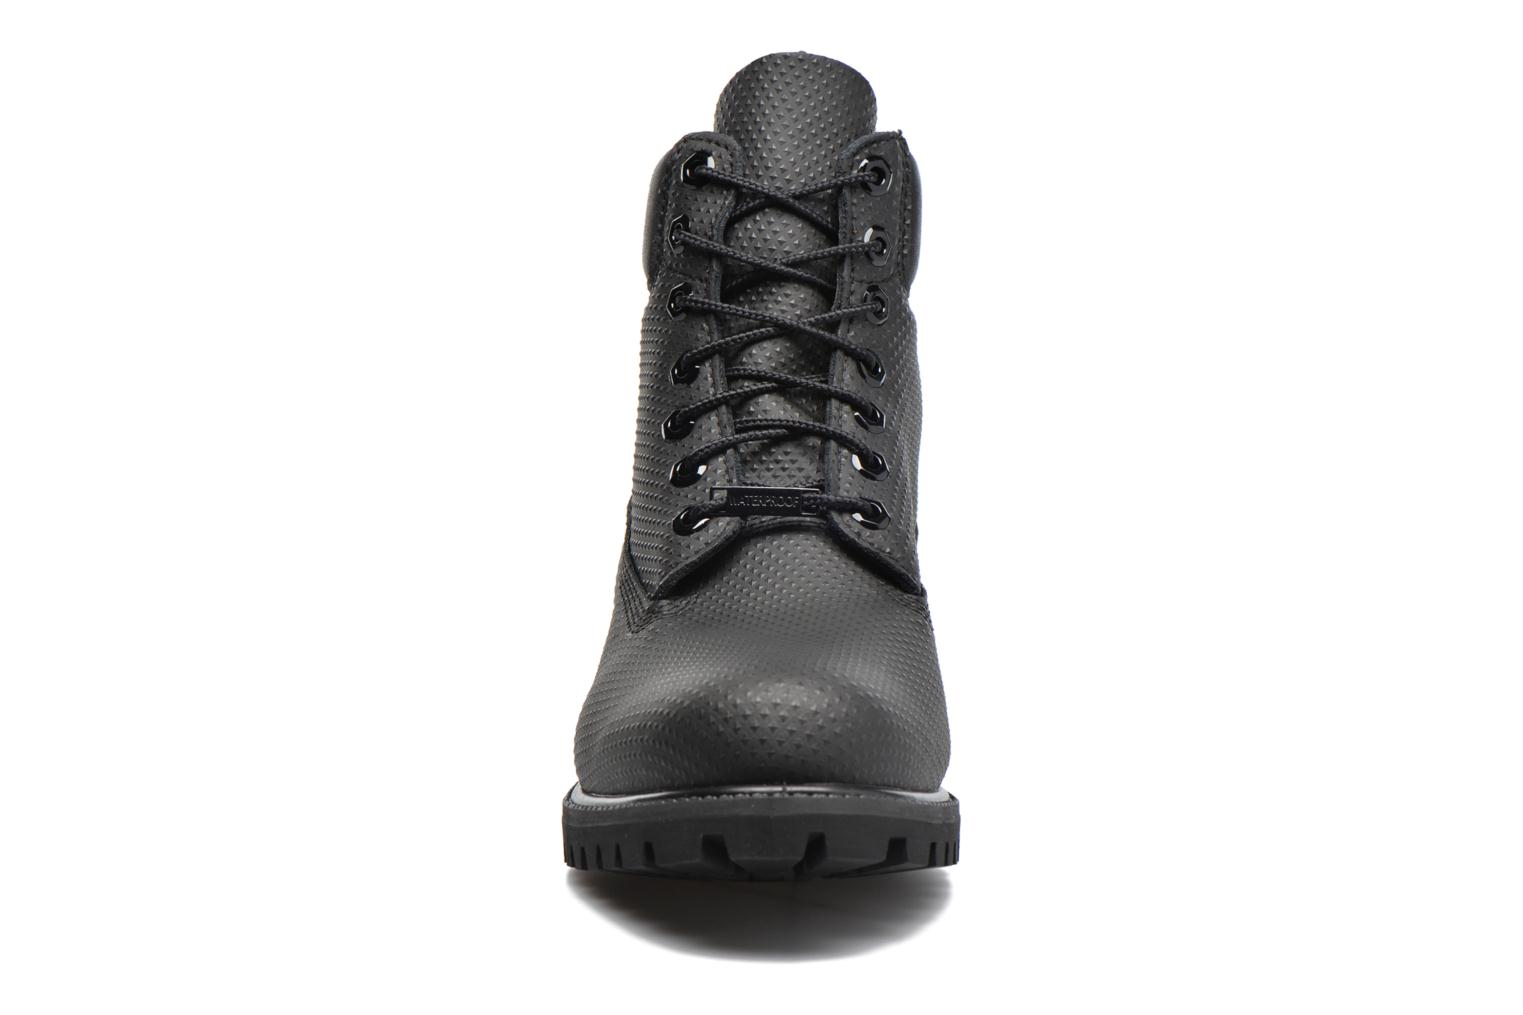 6in premium boot Black Spikey Helcor